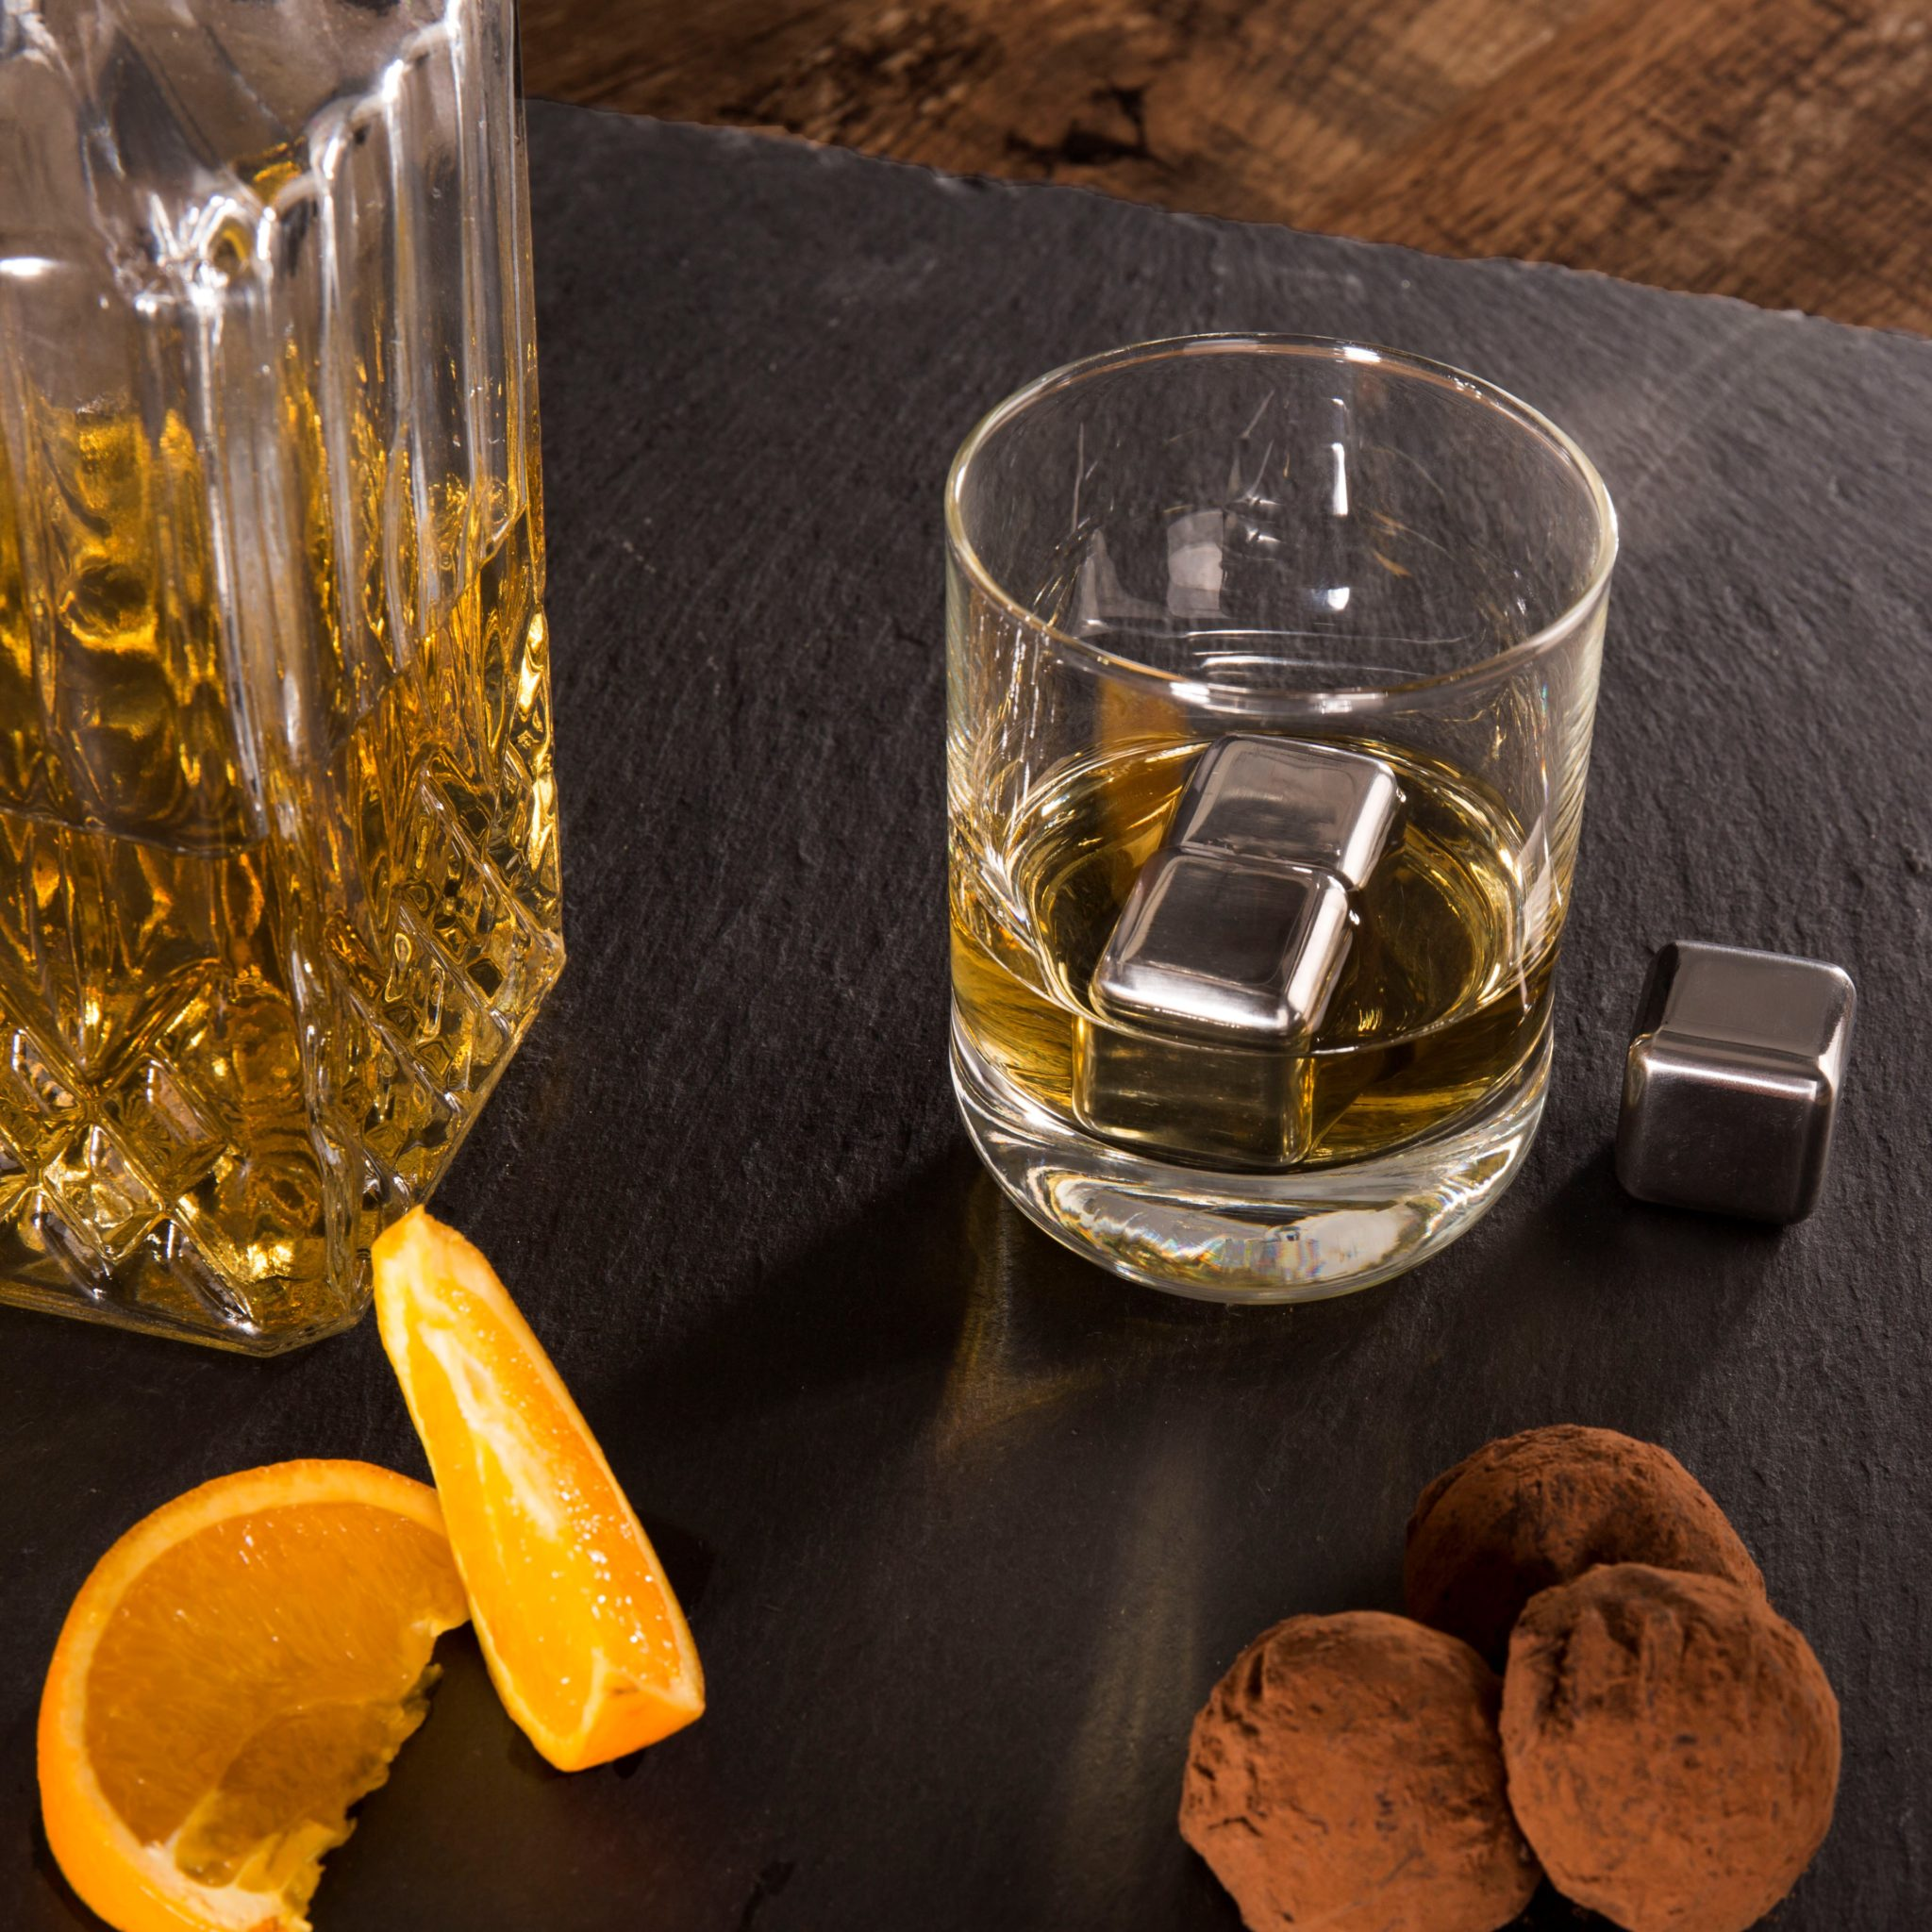 The perfect whisky glass